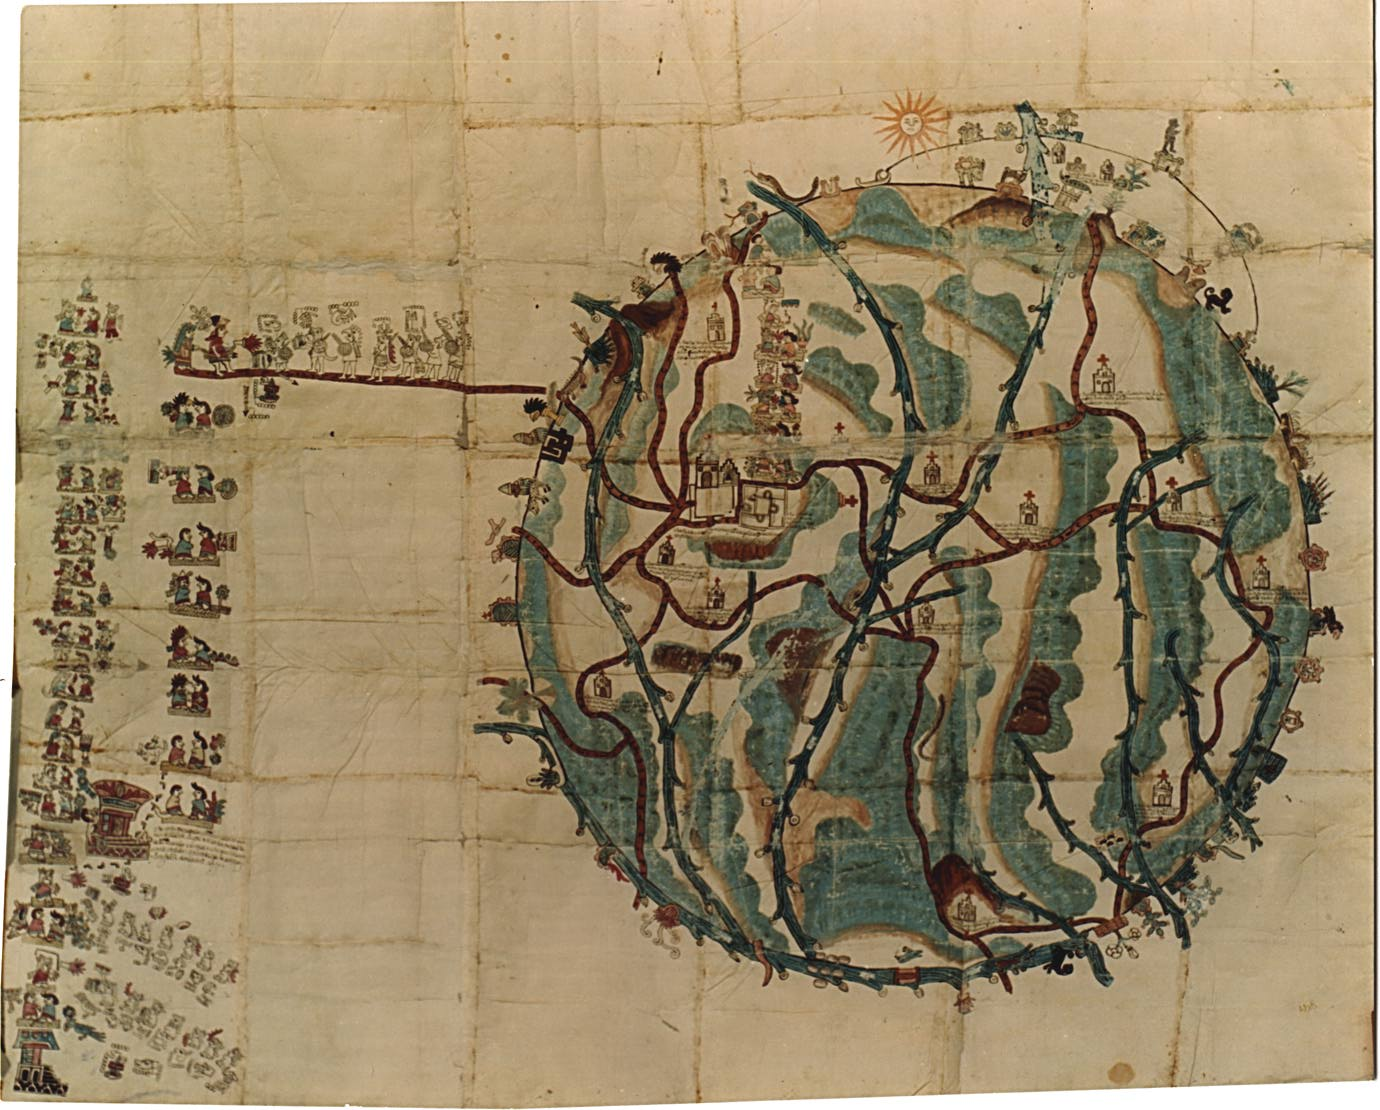 FIGURE 2. The Mapa de Teozacoalco, circa 1580. Image courtesy of the Benson Latin American Library, University of Texas at Austin.